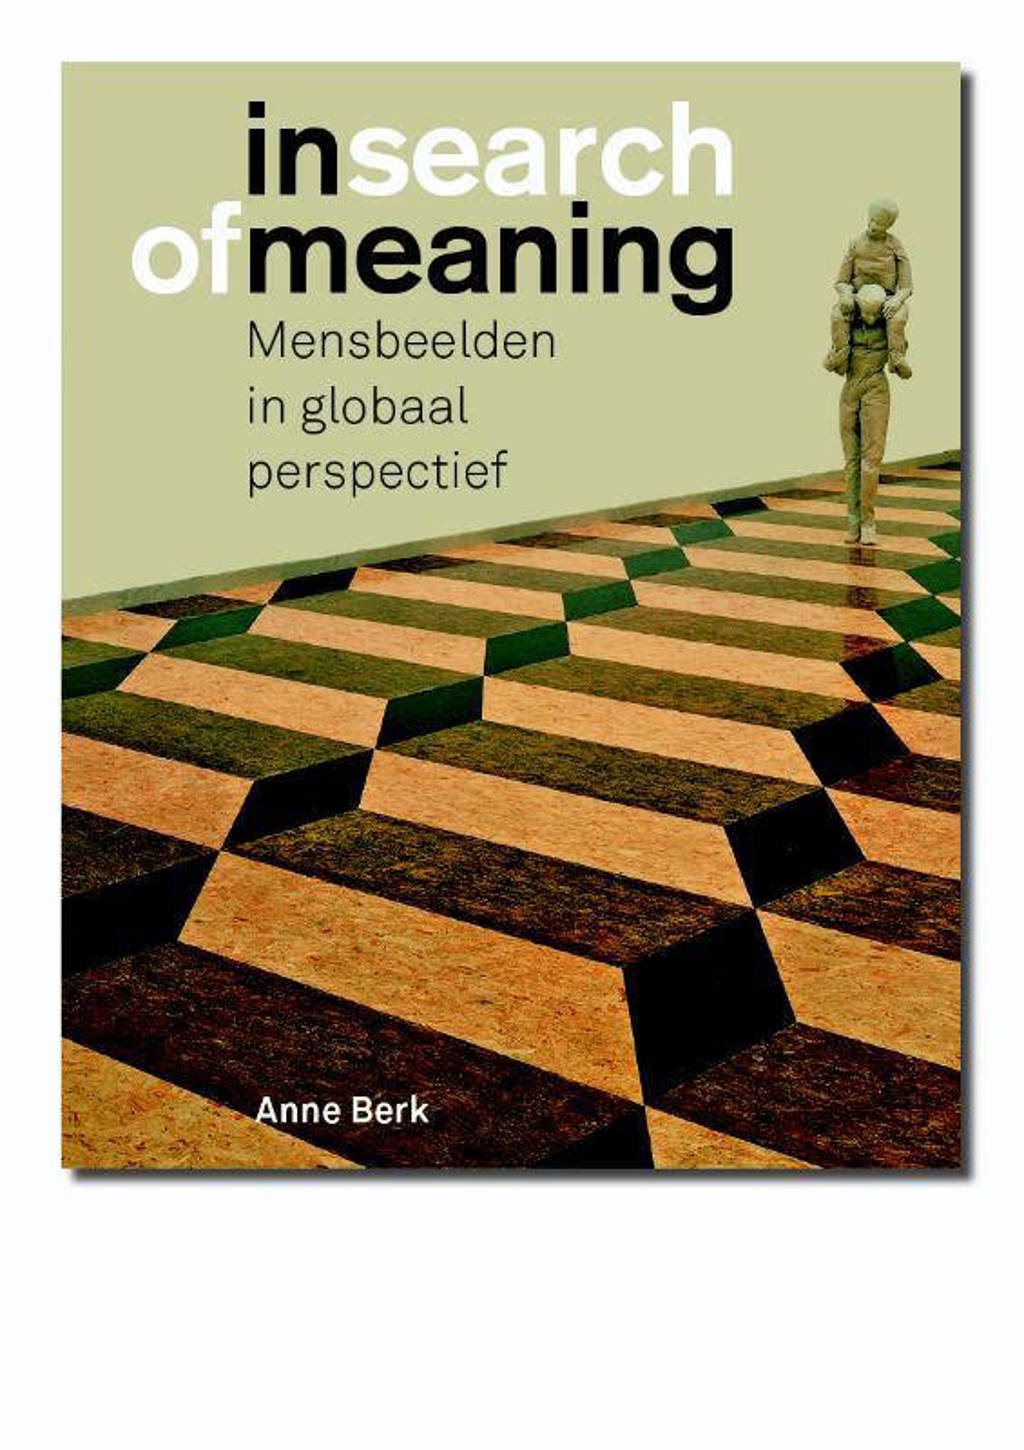 In search of meaning - Anne Berk